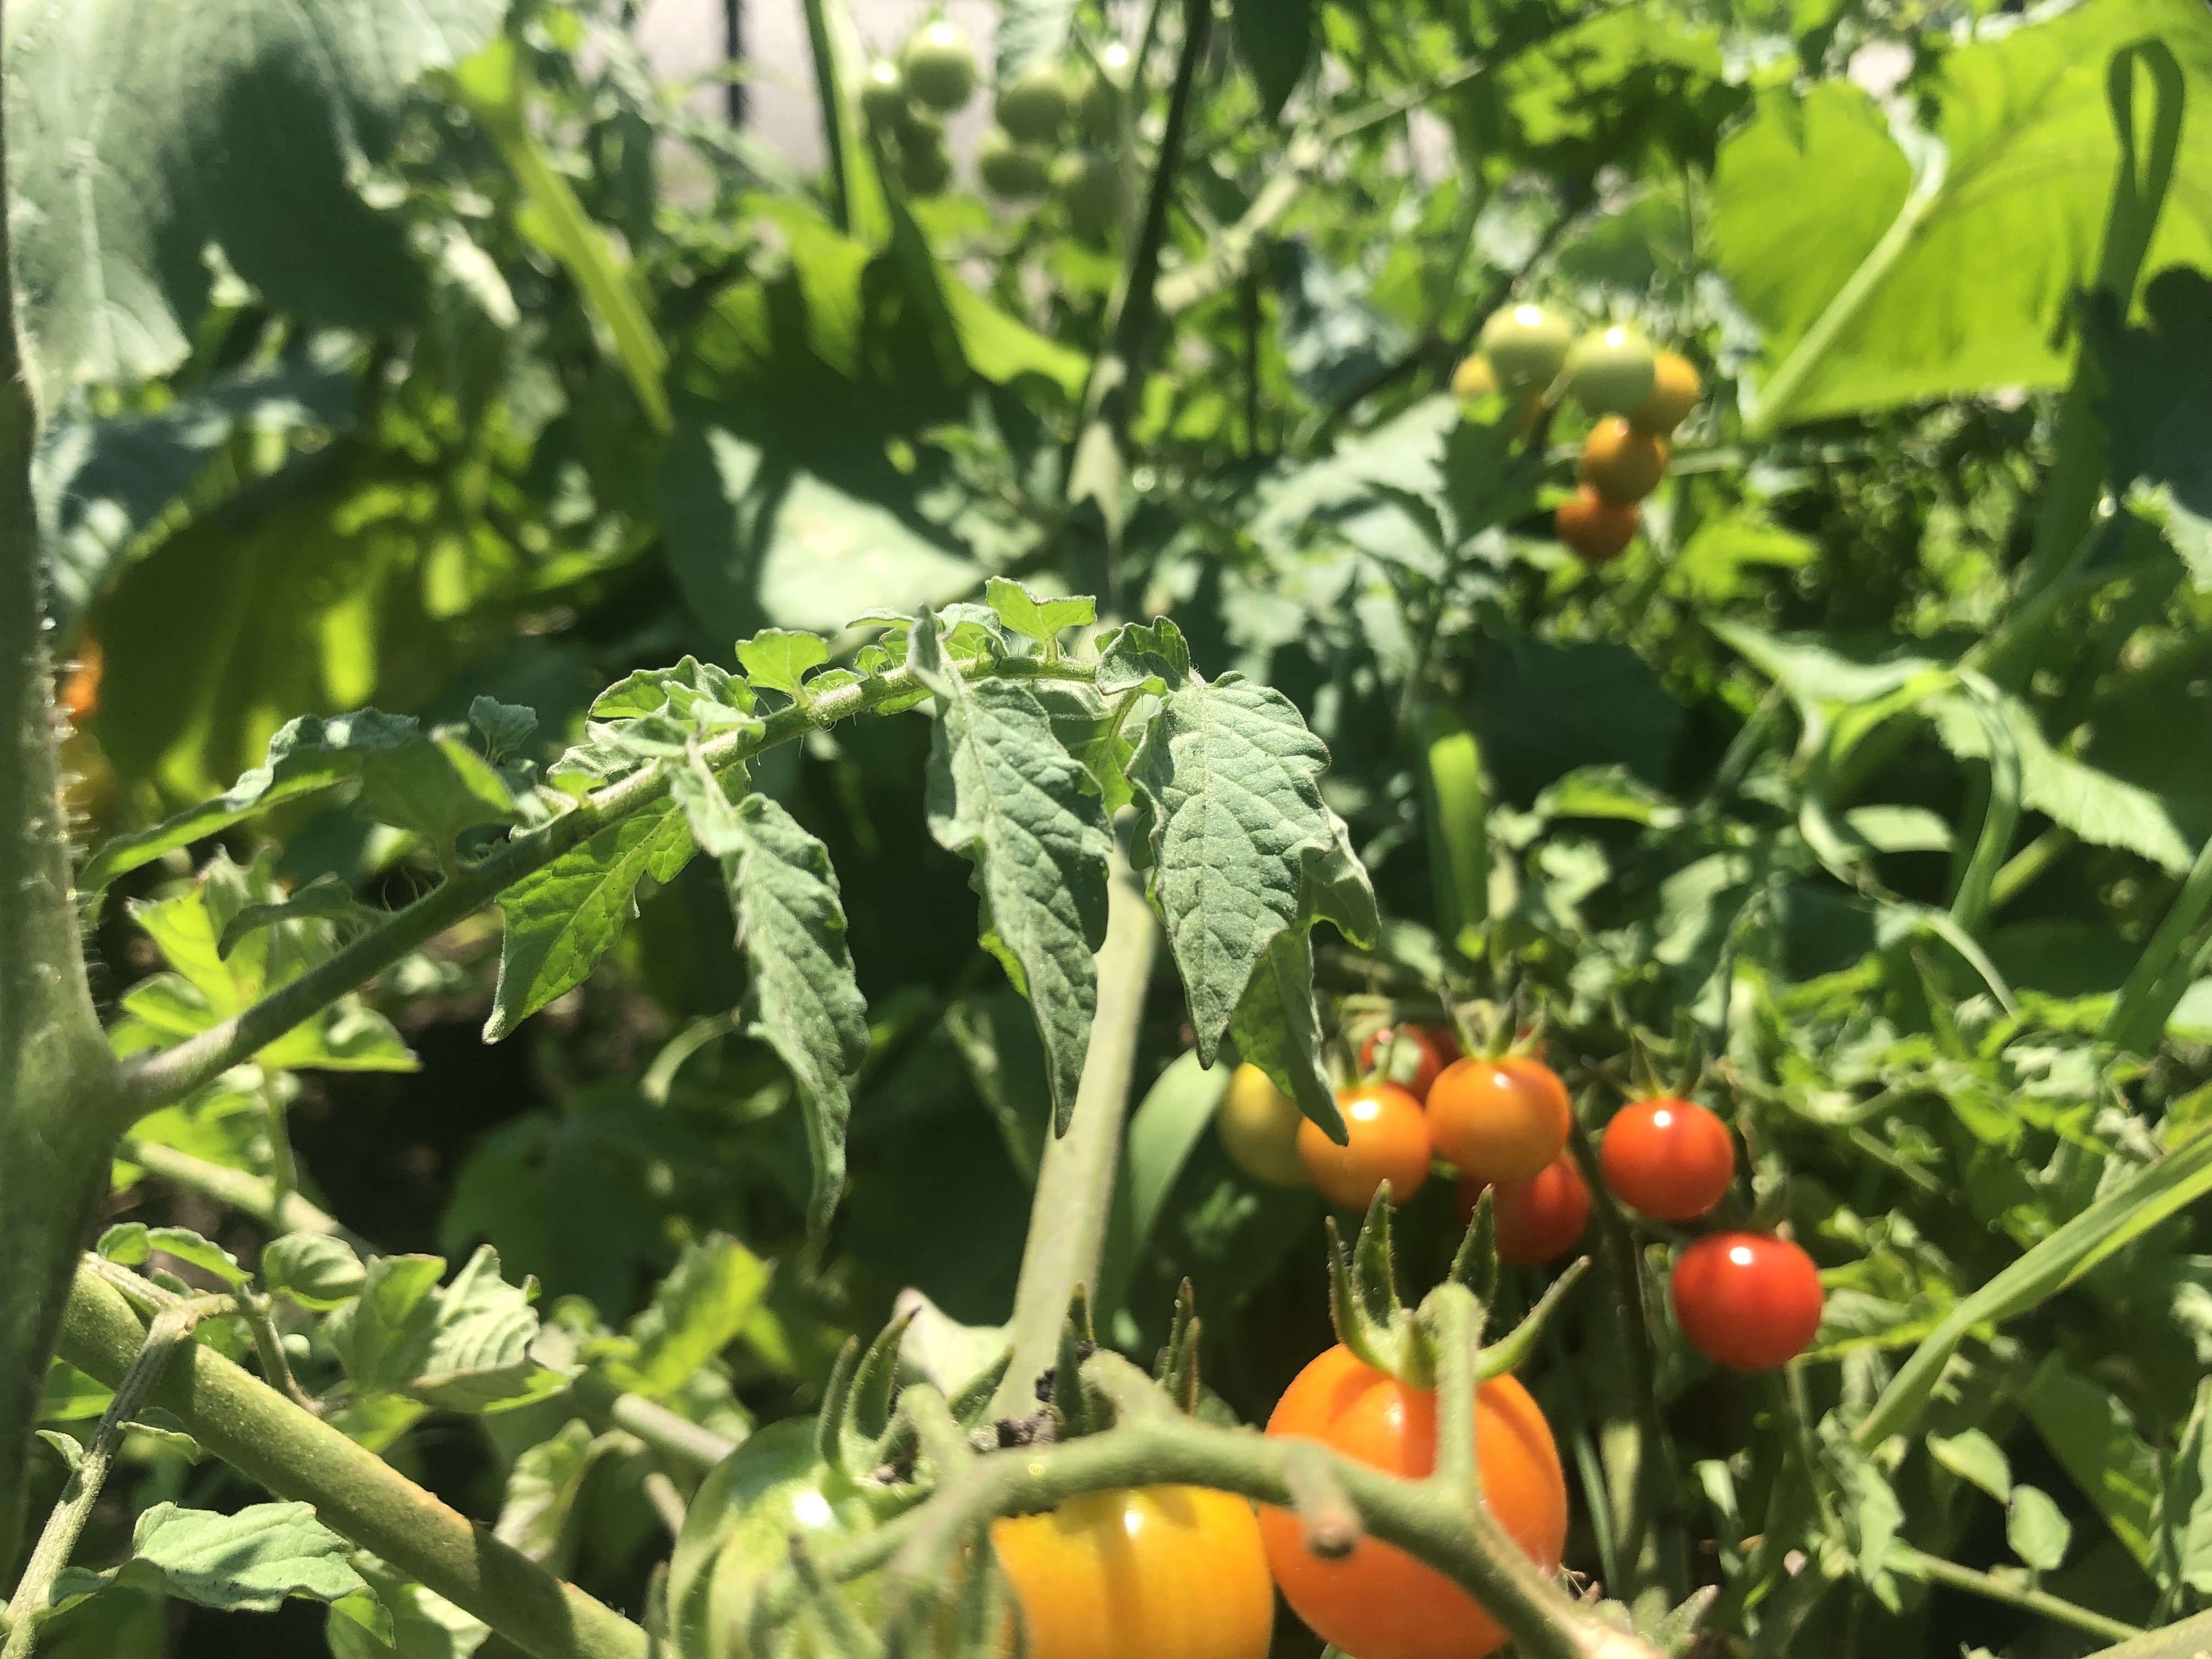 Tomatoes in a garden at KIPP Bloom